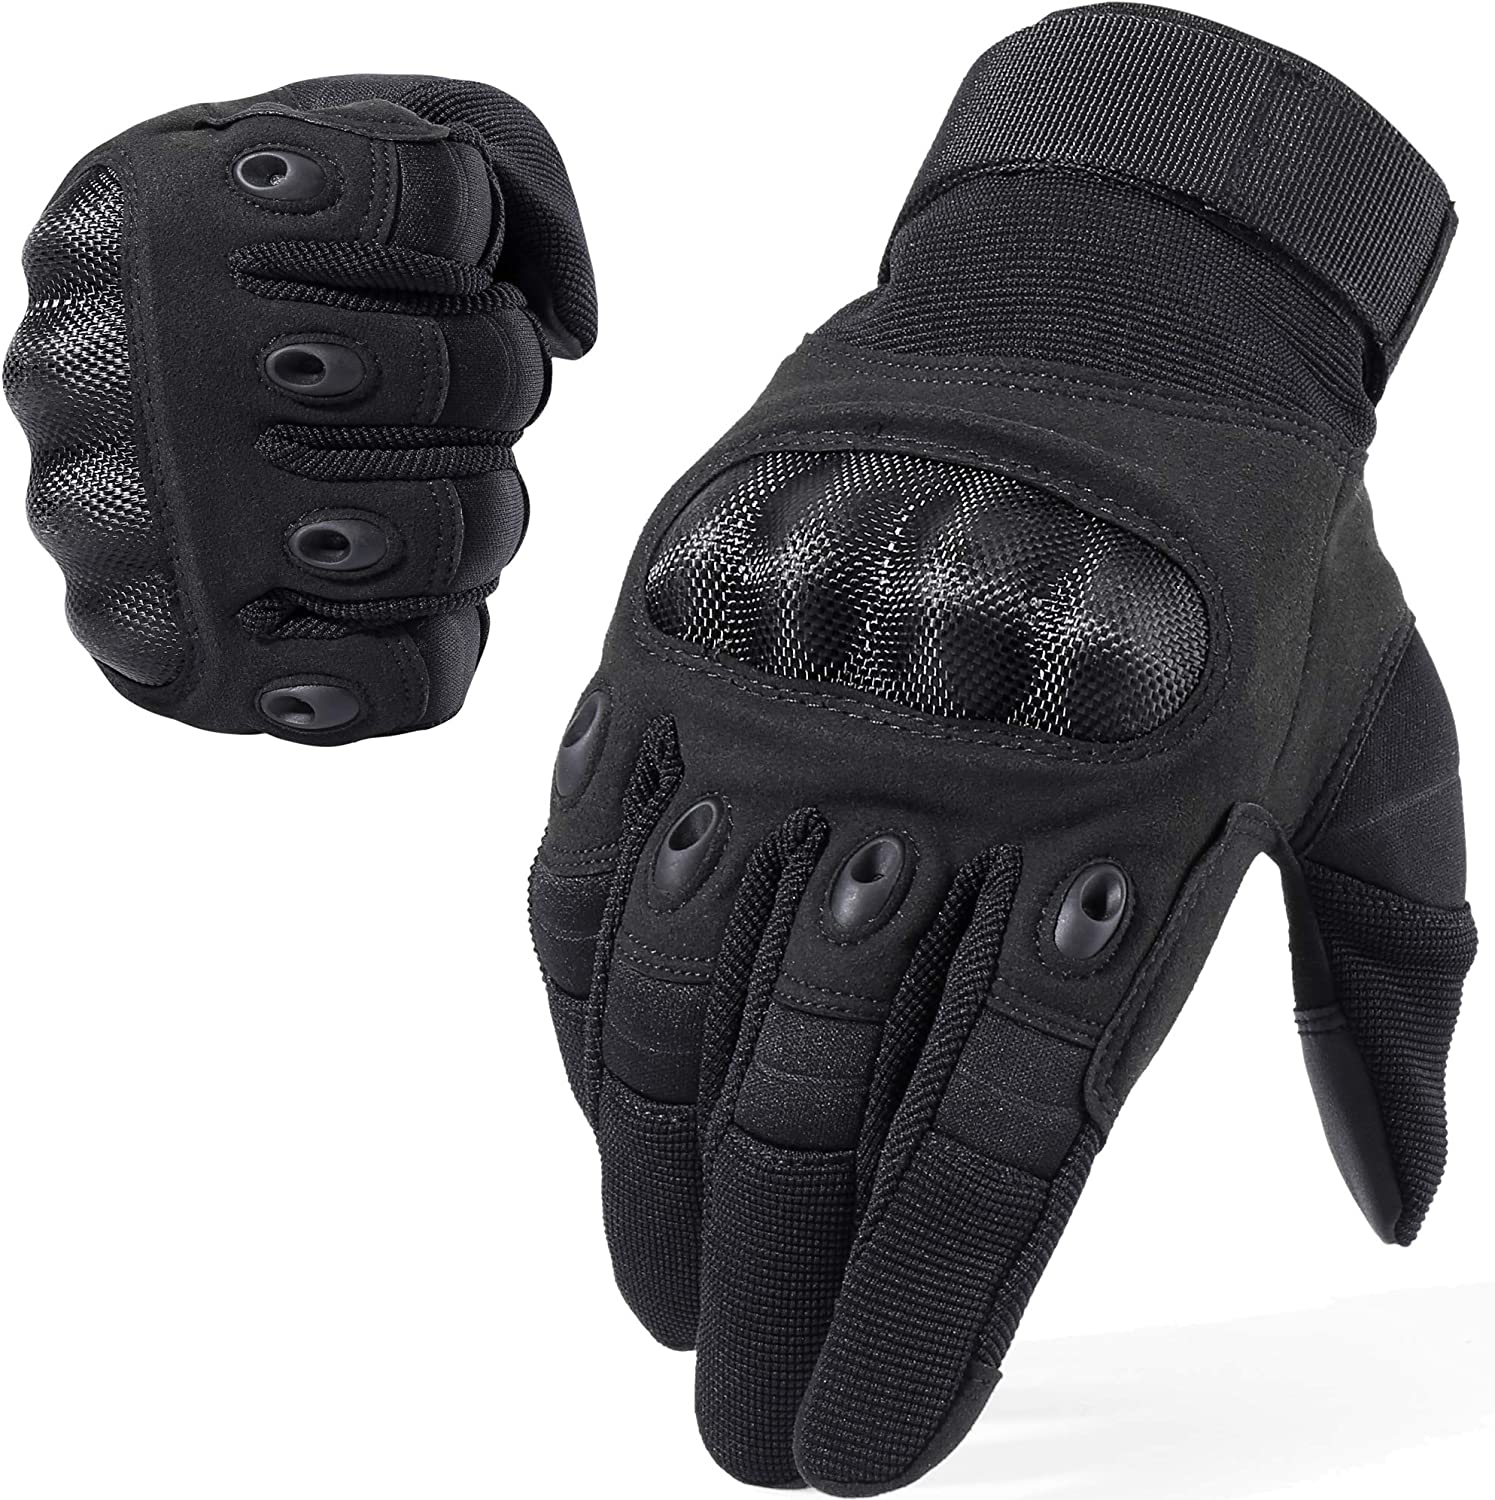 WCTactful Full Finger Tactical Gloves